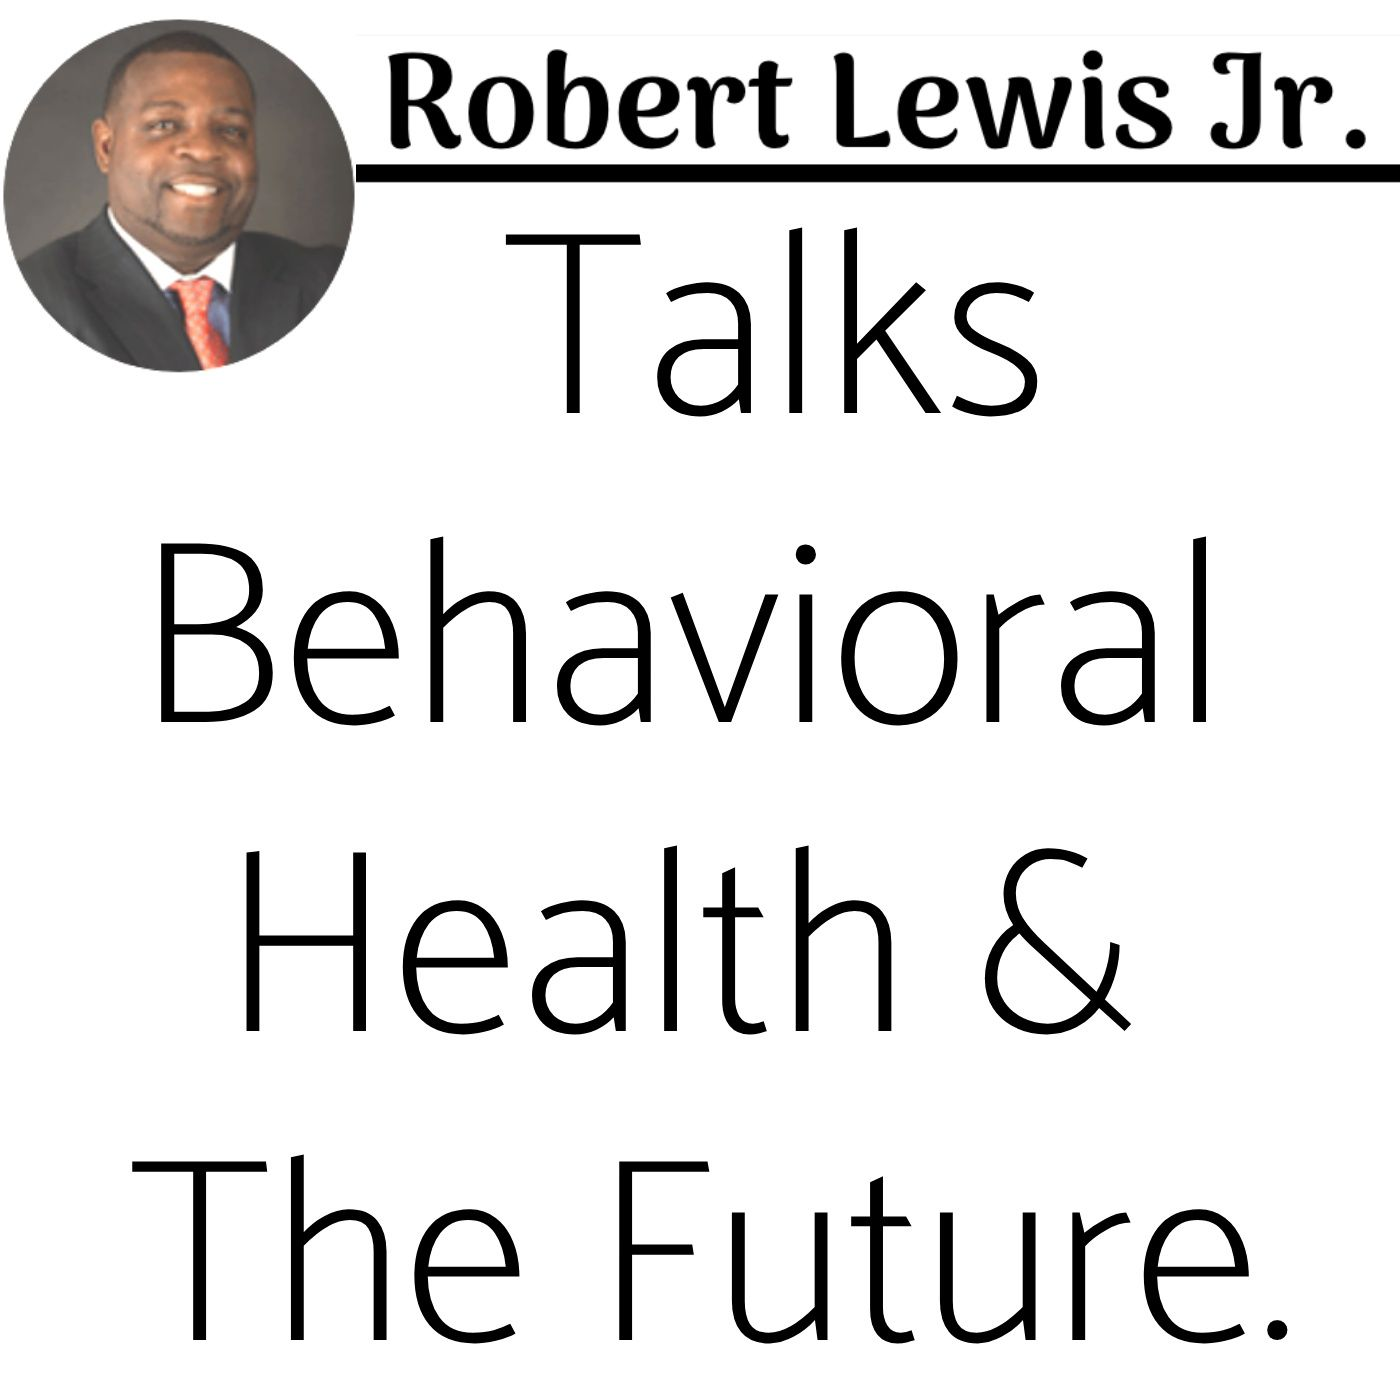 Part 3 of 3: Robert Lewis Jr. Talks Behavioral Health & The Future.